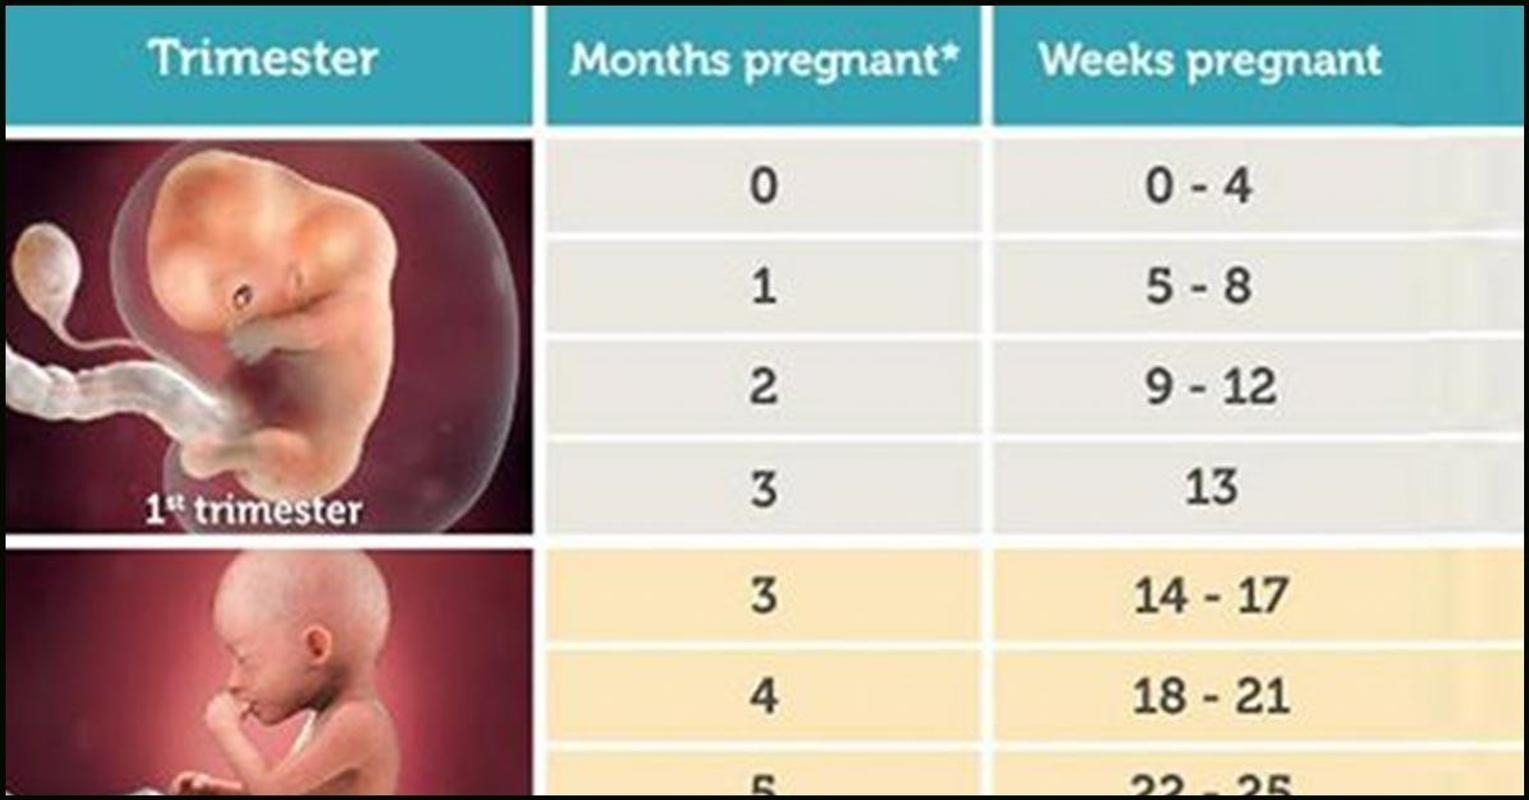 Pregnancy Calculator Dayday For Android - Apk Download inside Weeks Of Pregnancy Day By Day